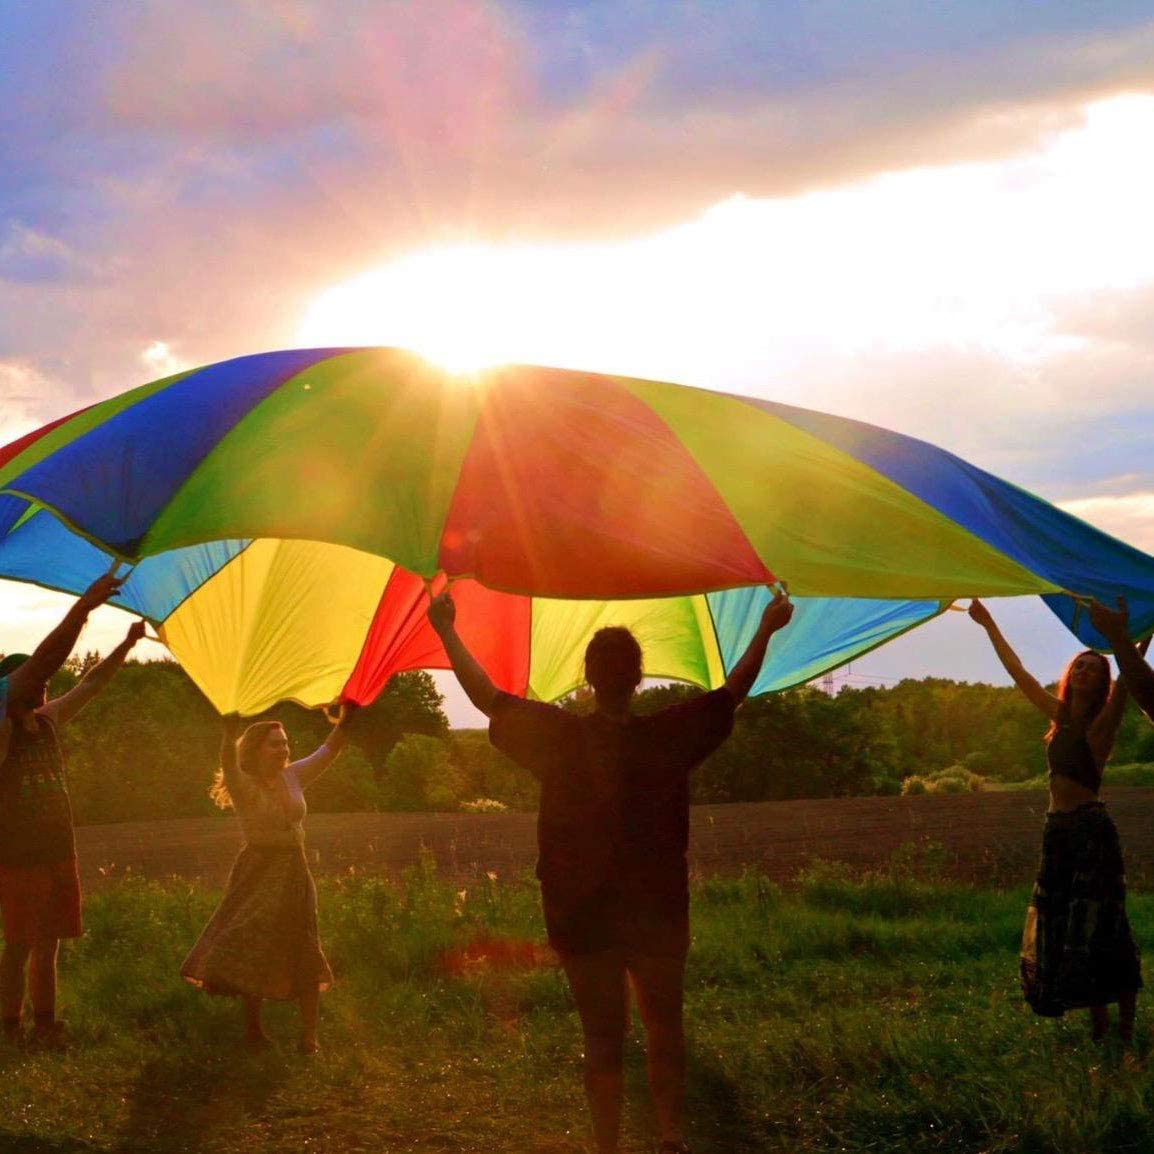 Sonyabecca Play Parachute 9ft 10ft 12ft with 12 Handles for Kids Cooperative Team Building Games